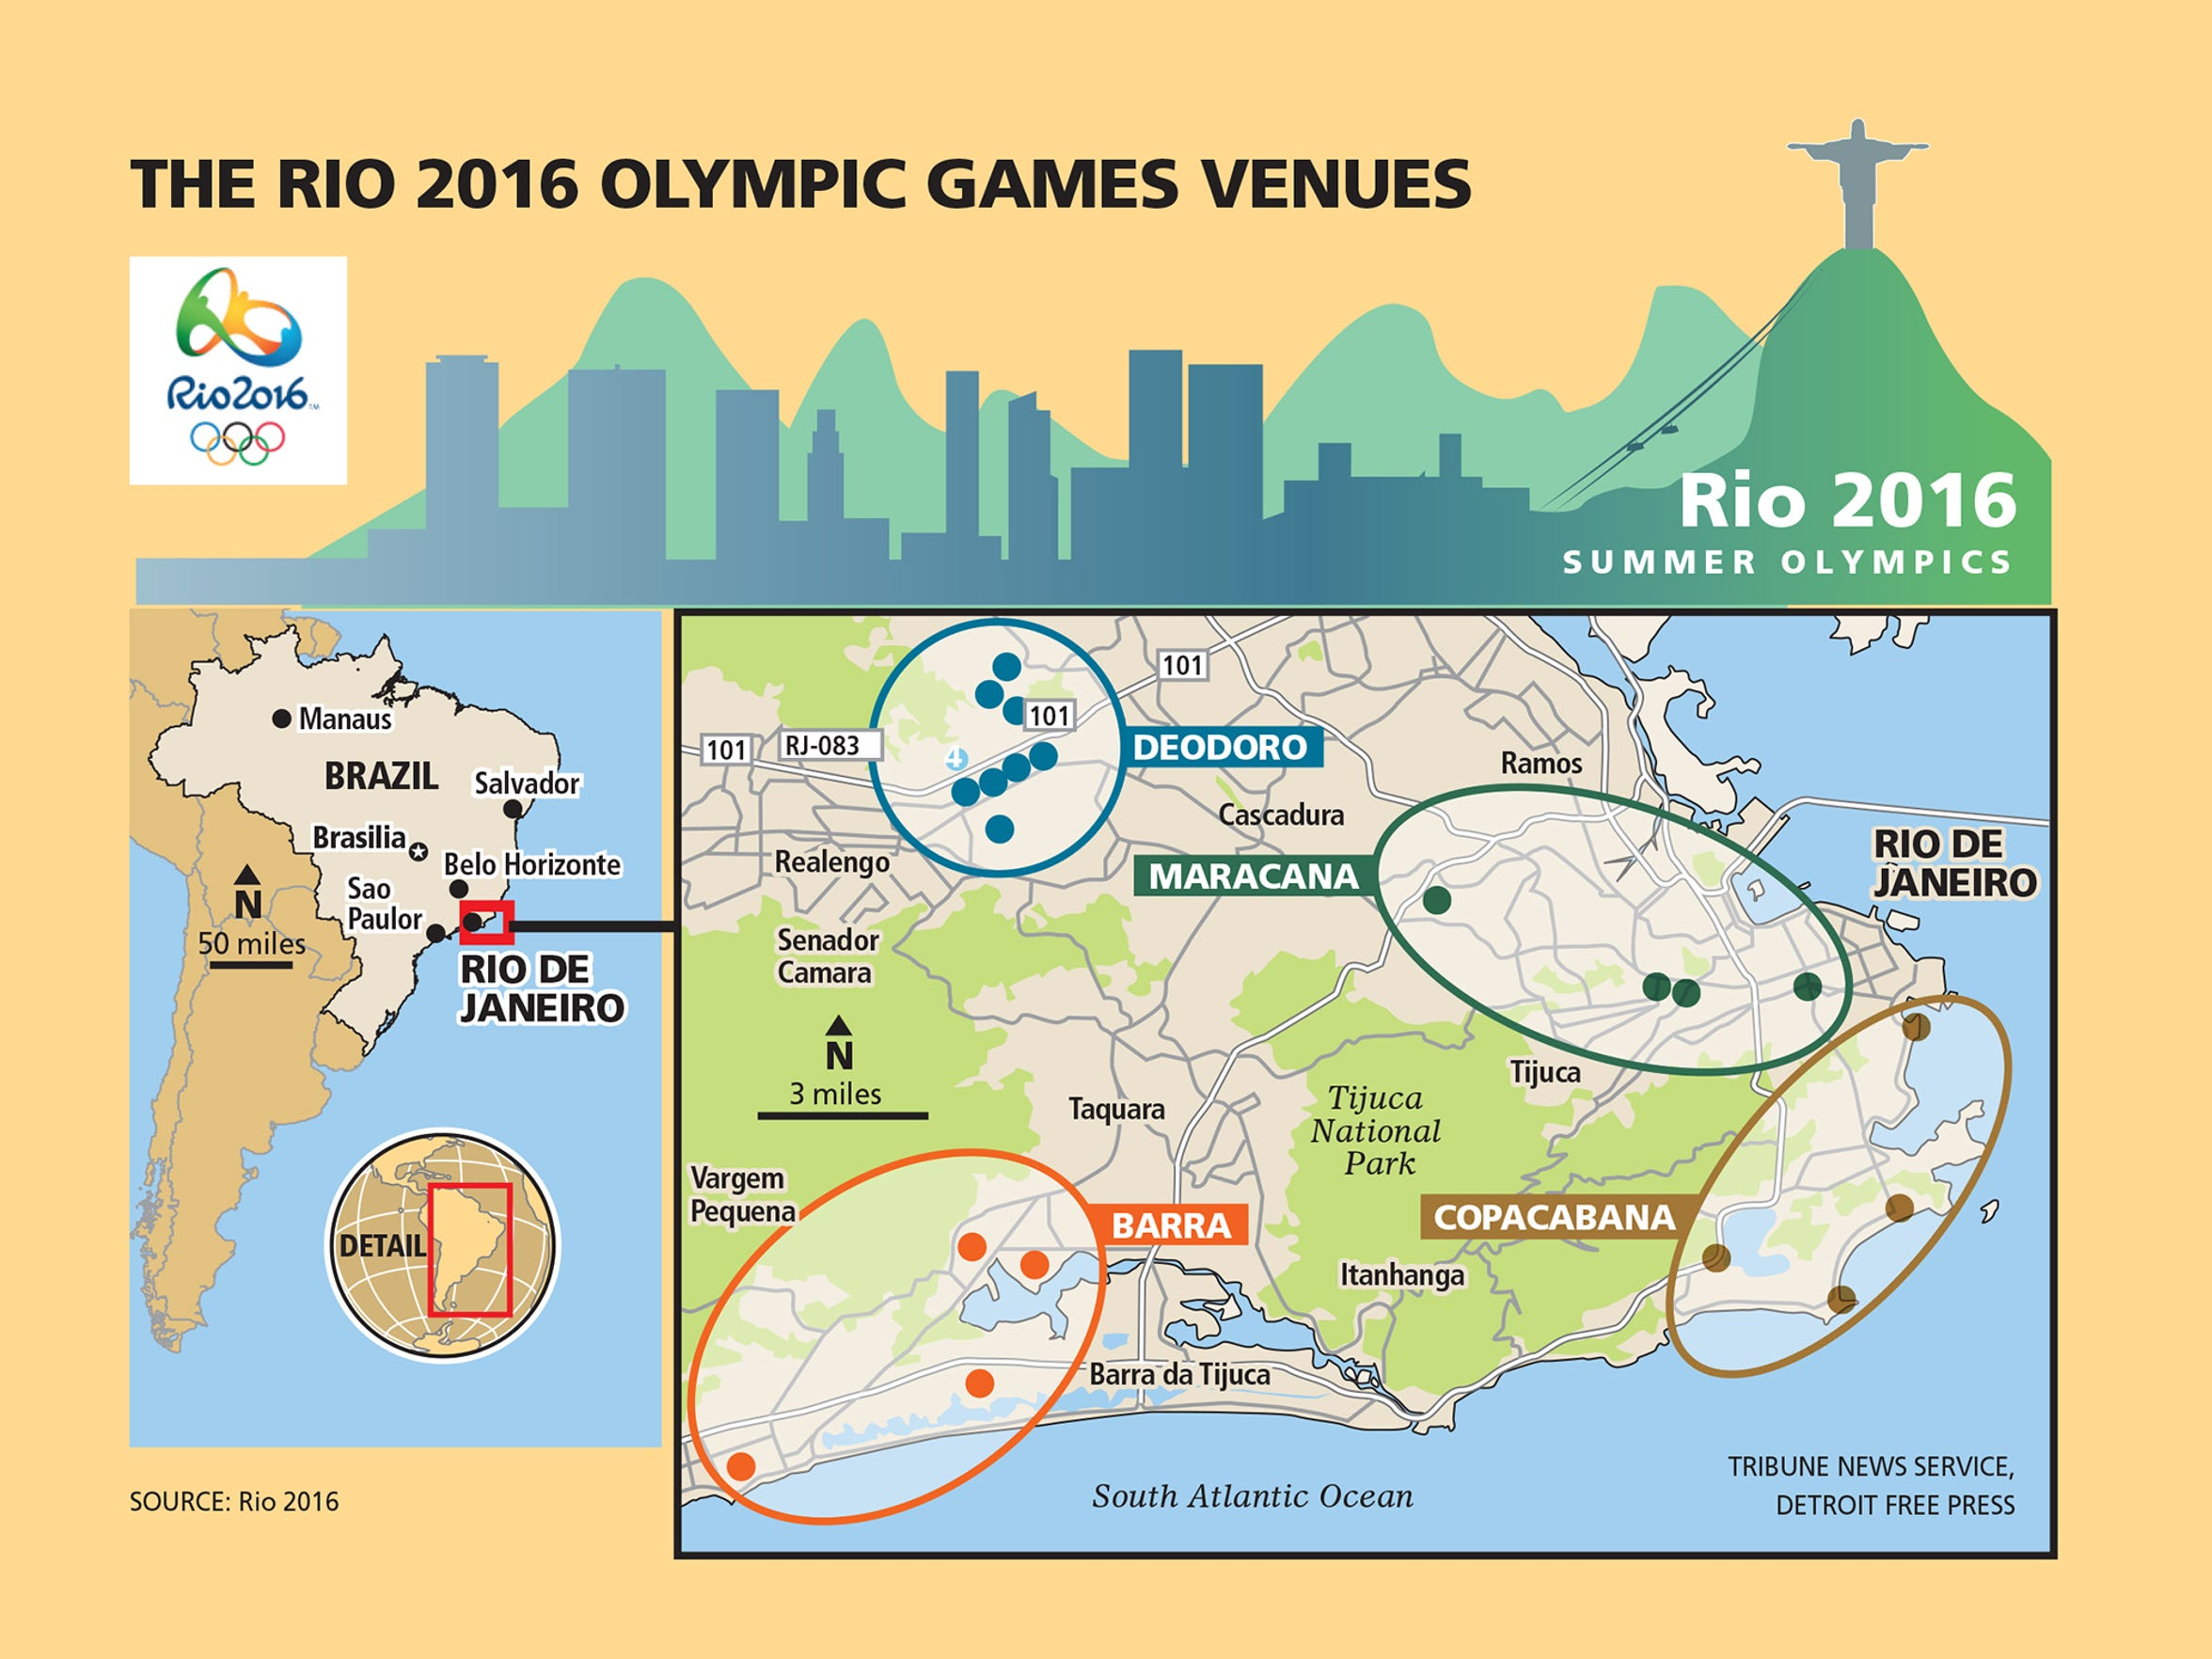 Rio 2016 Olympic Games venues